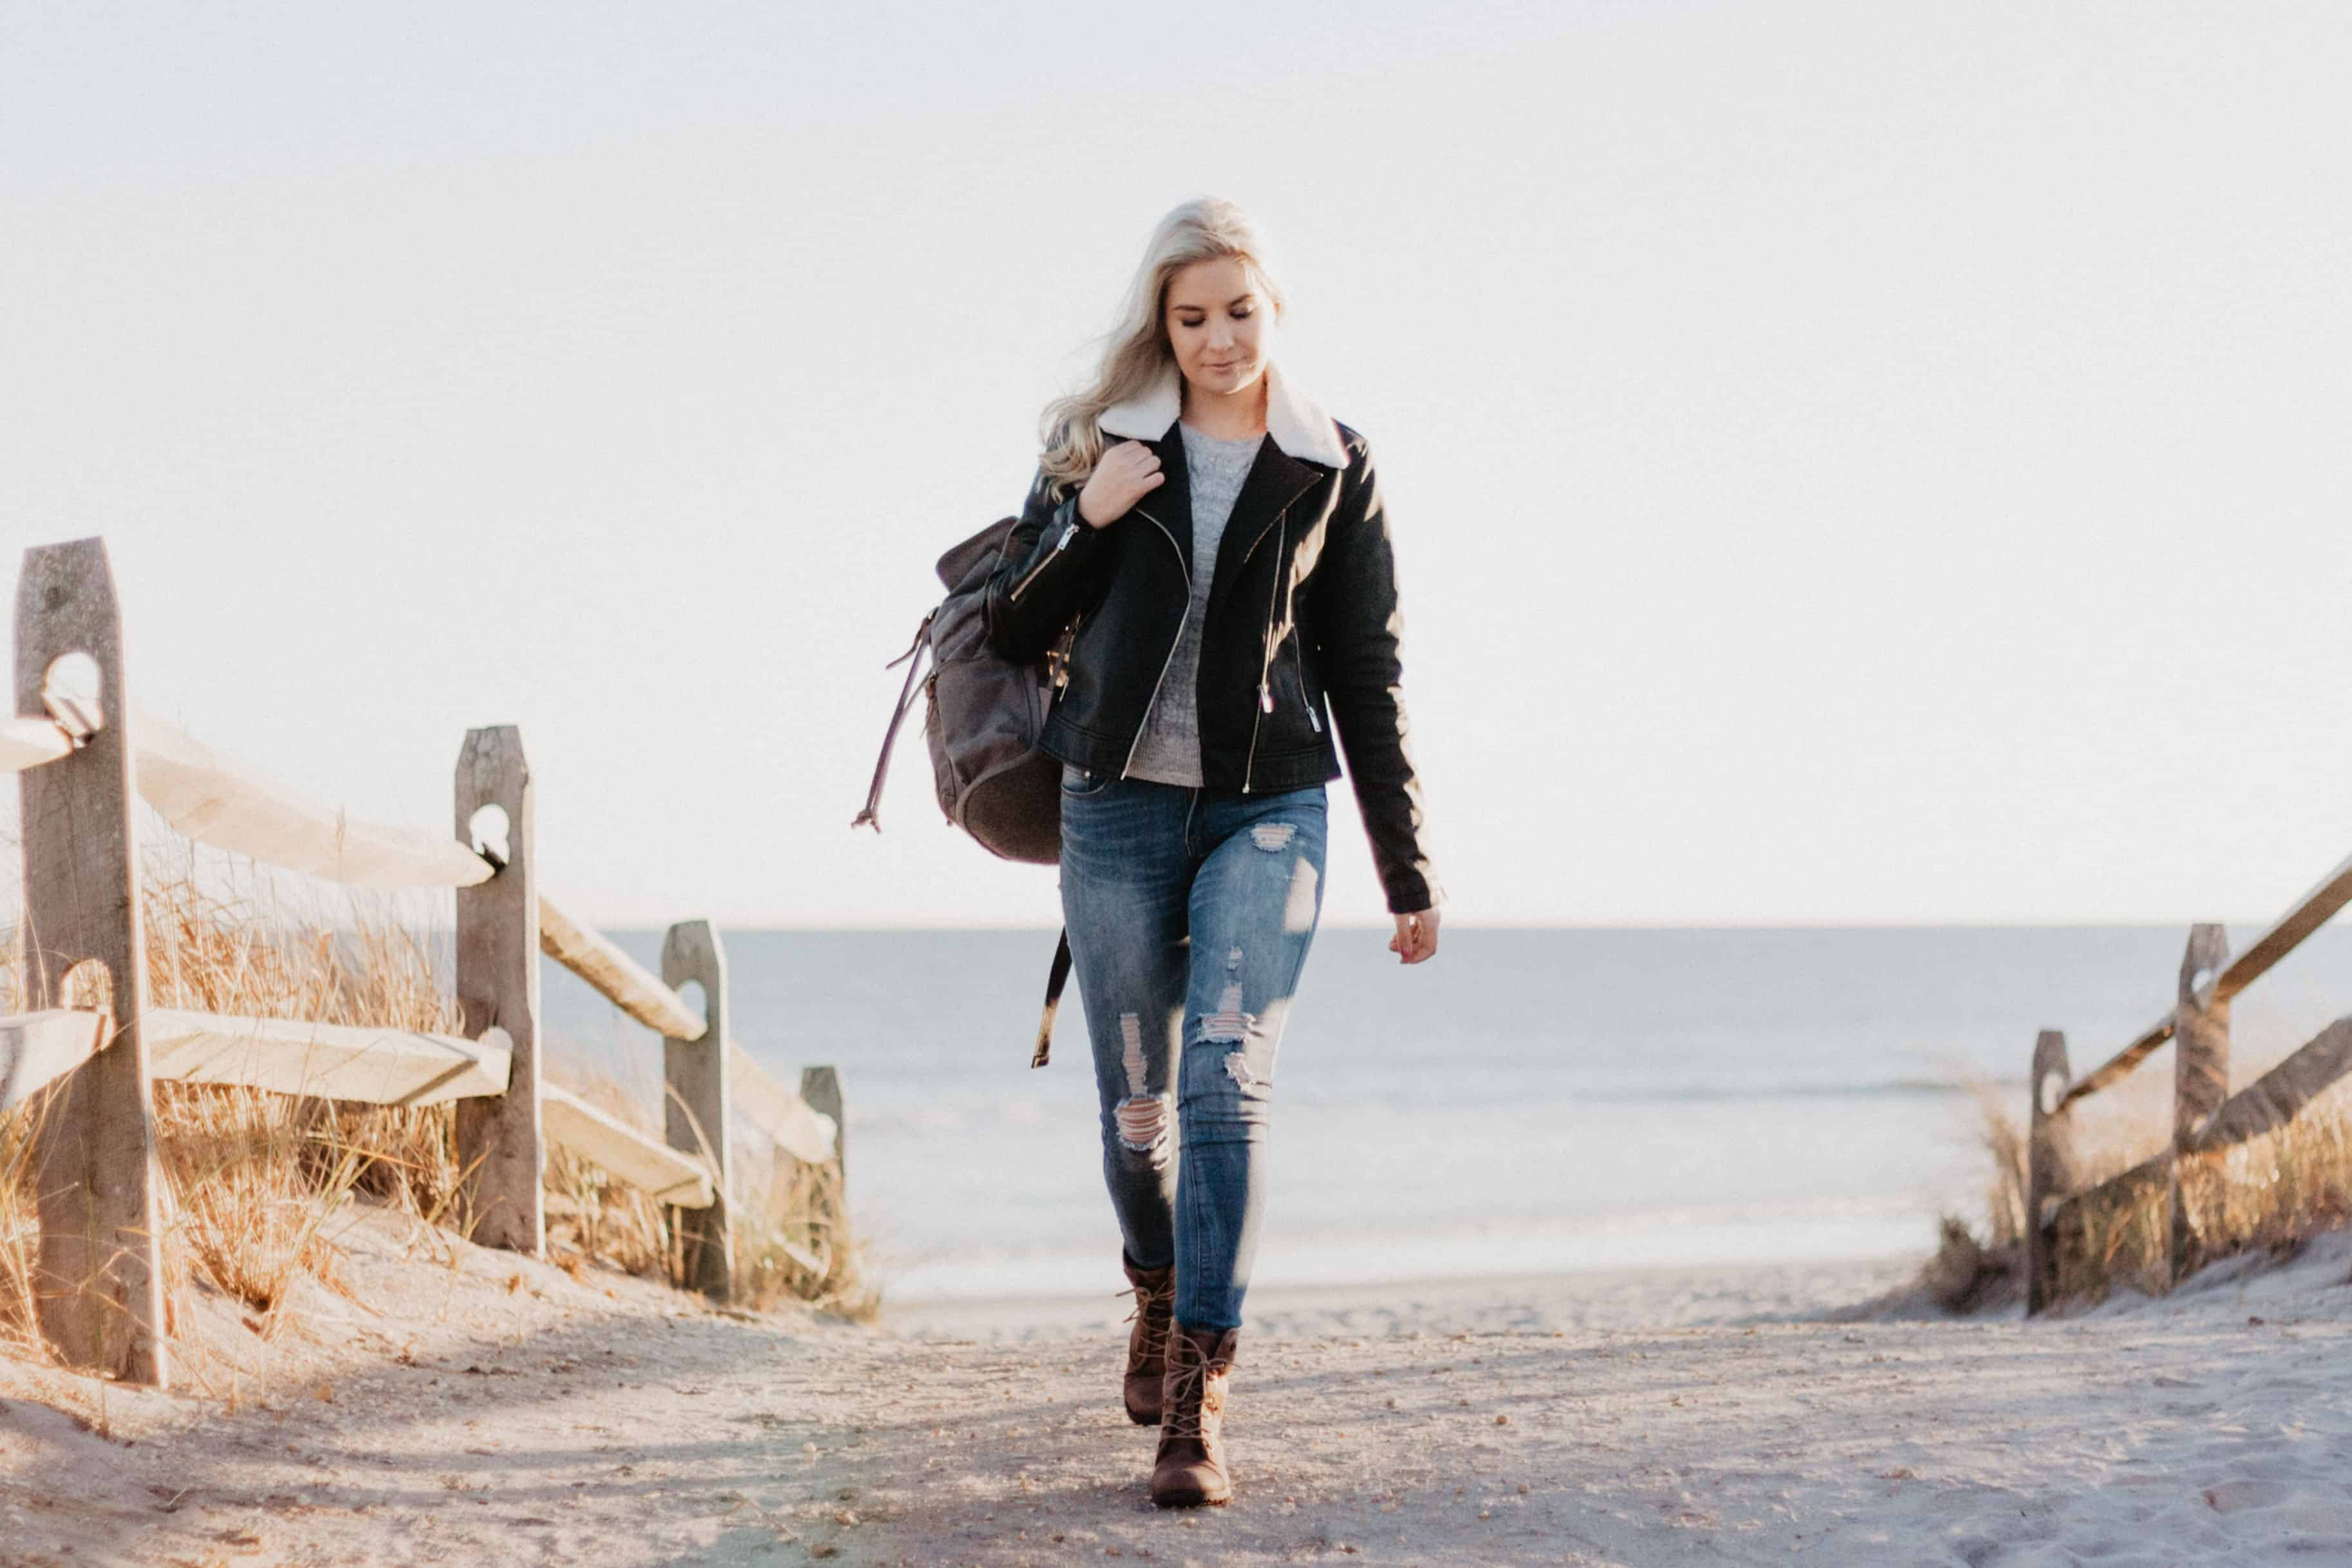 20 benefits of walking, a woman walking by the beach.